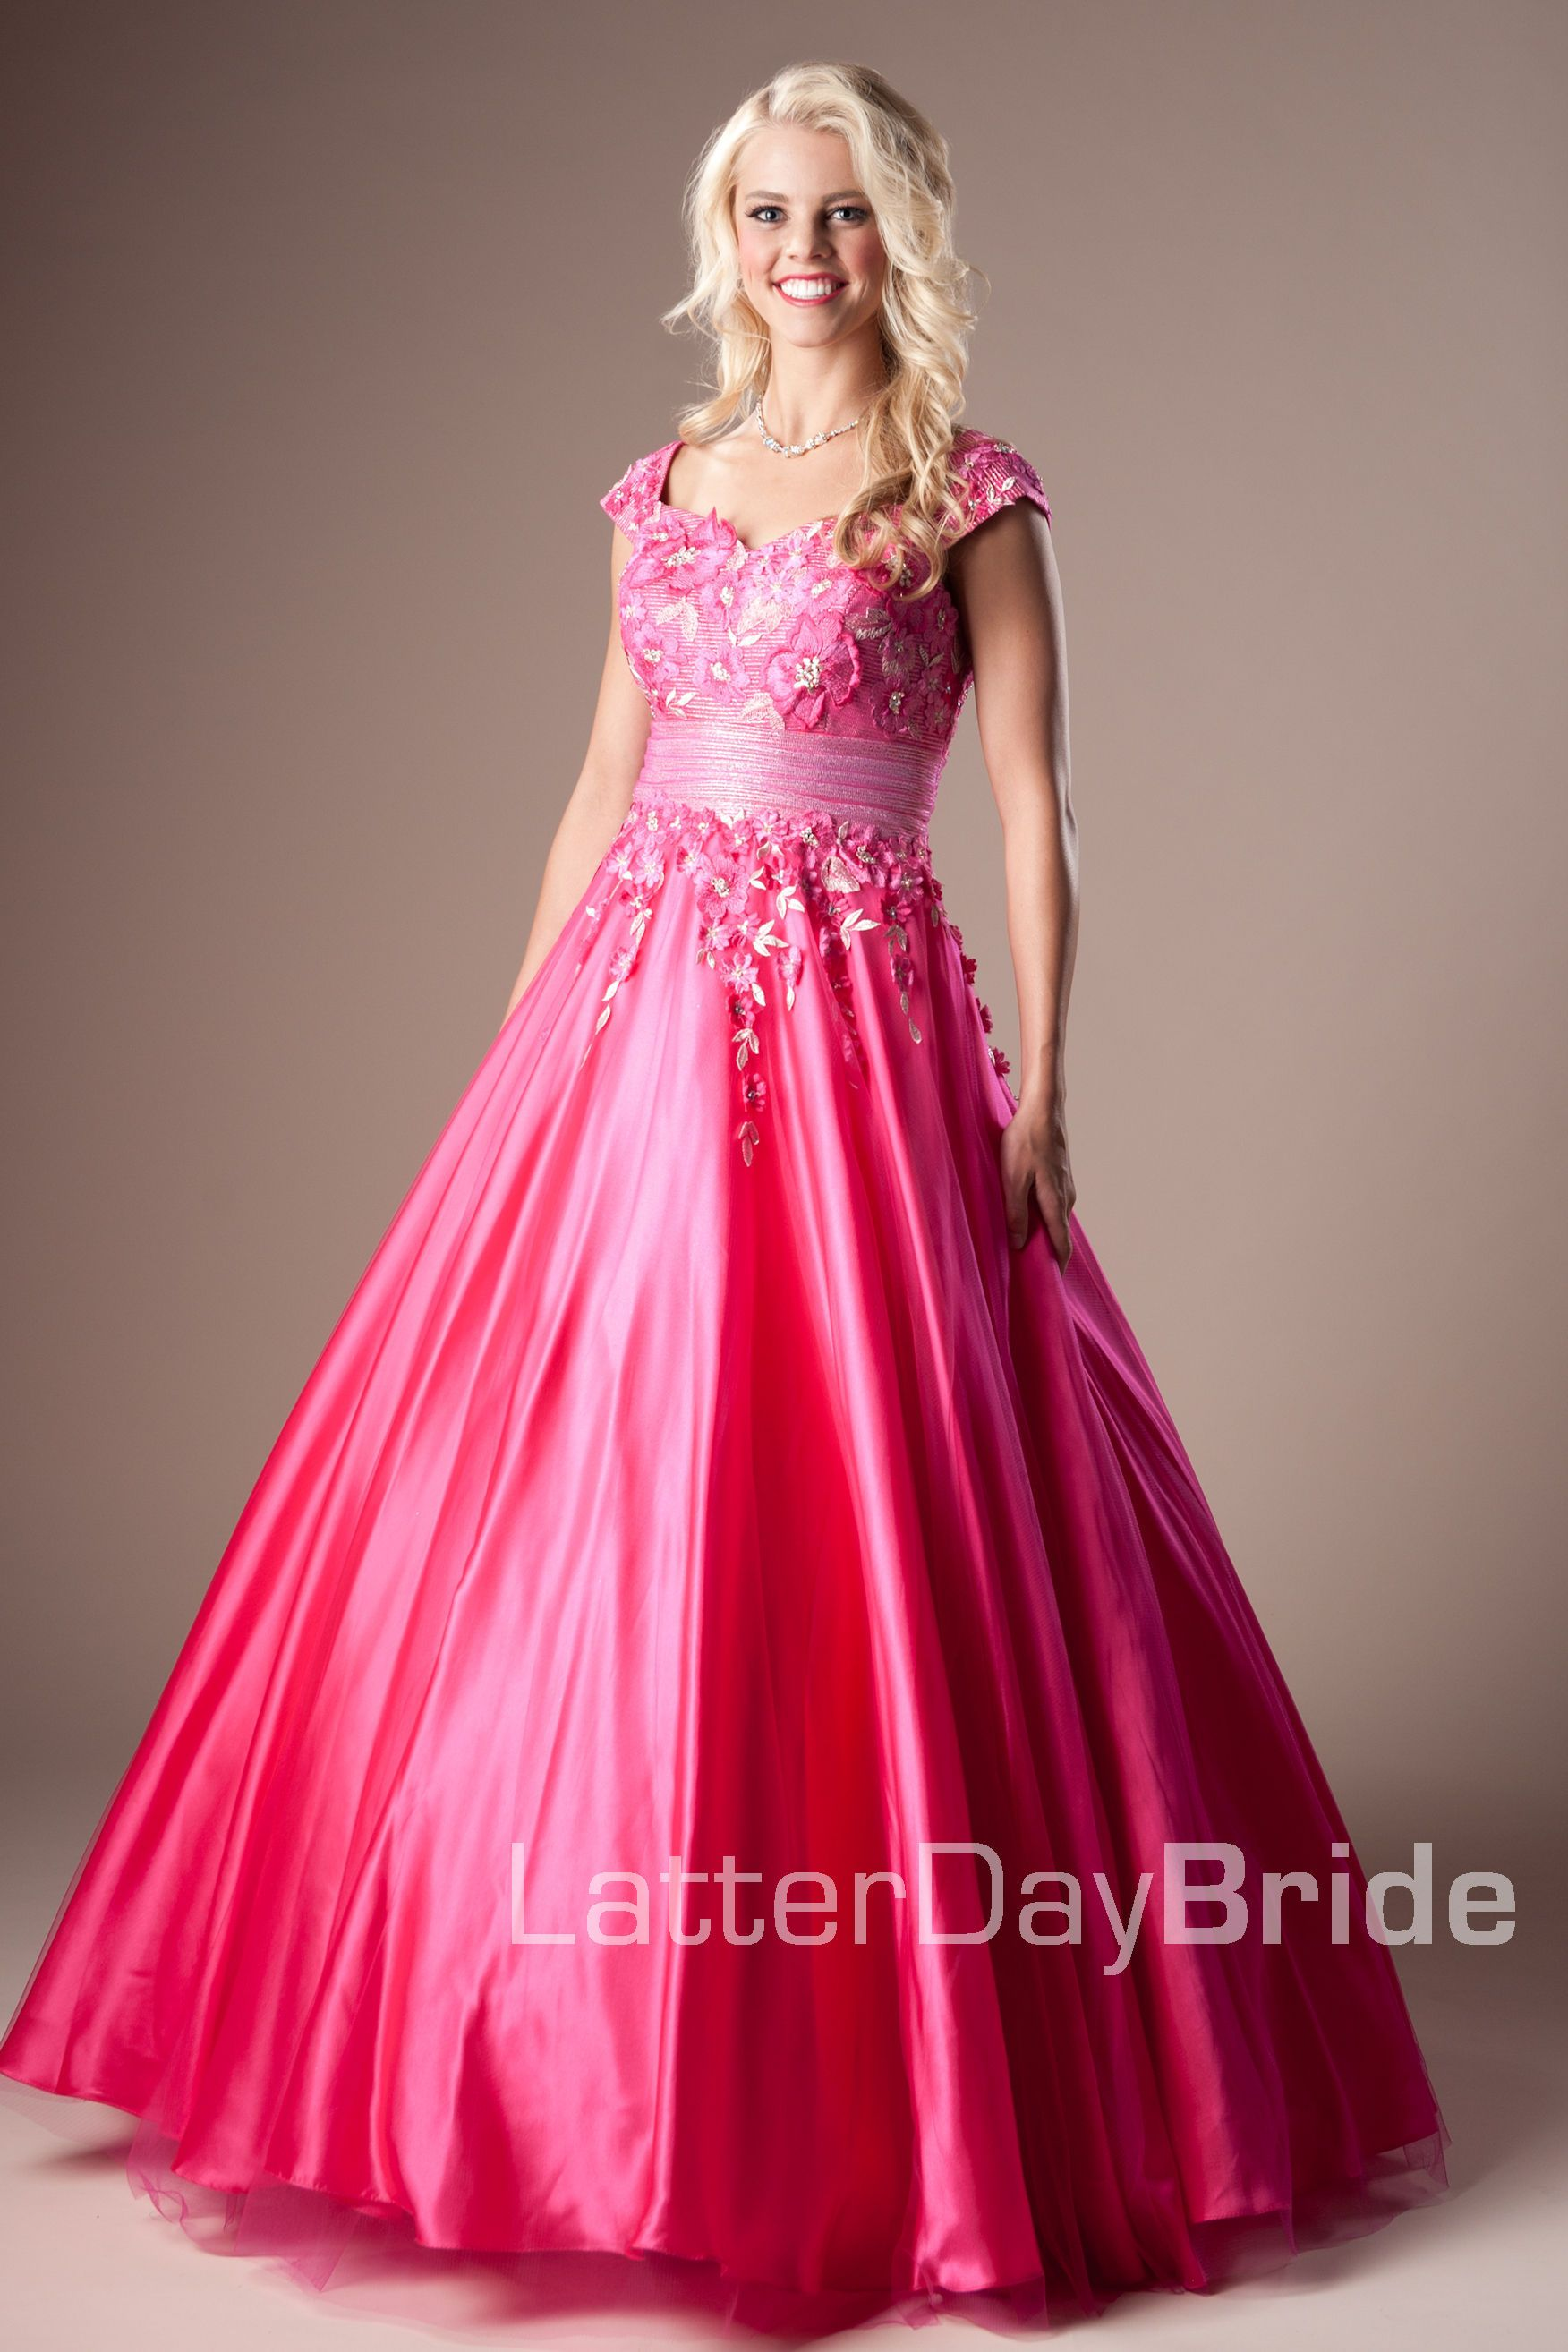 Bridesmaid & Prom, Shayna | LatterDayBride & Prom -Modest Mormon LDS Prom Dress